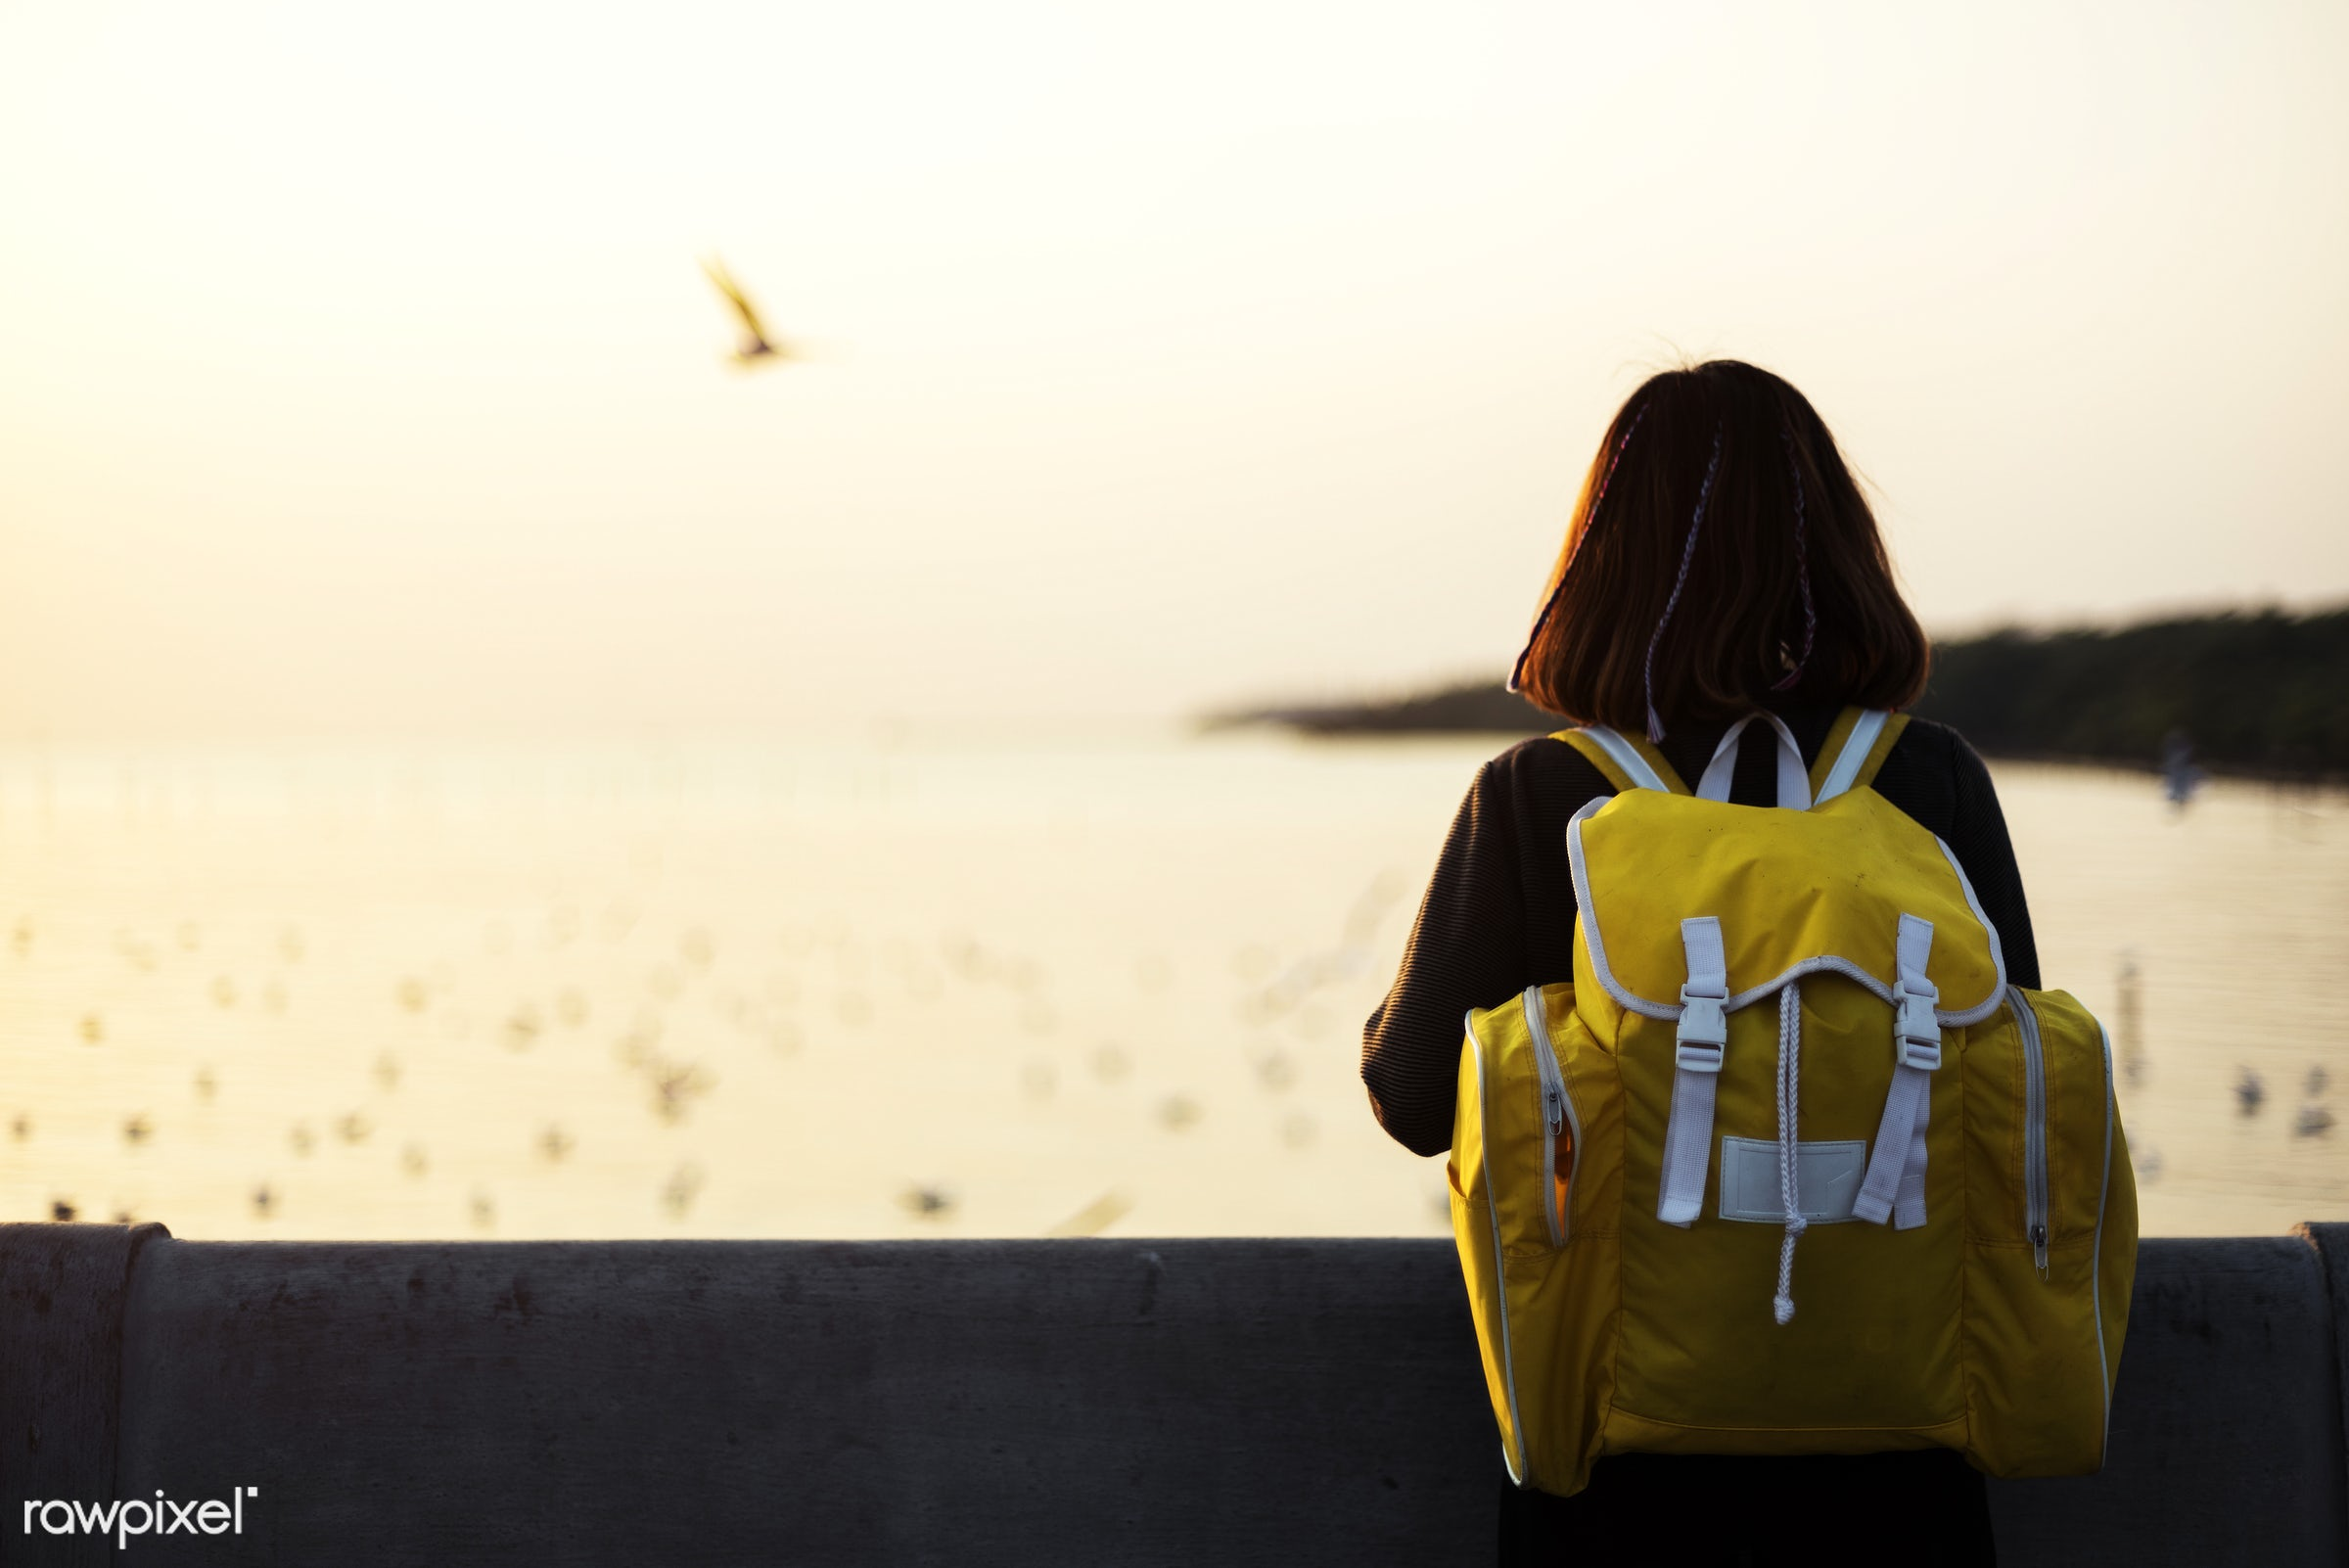 person, asian, girl, solo, nature, woman, backpack, alone, outdoors, bag, trip, wanderlust, travel, solitude, relaxing,...